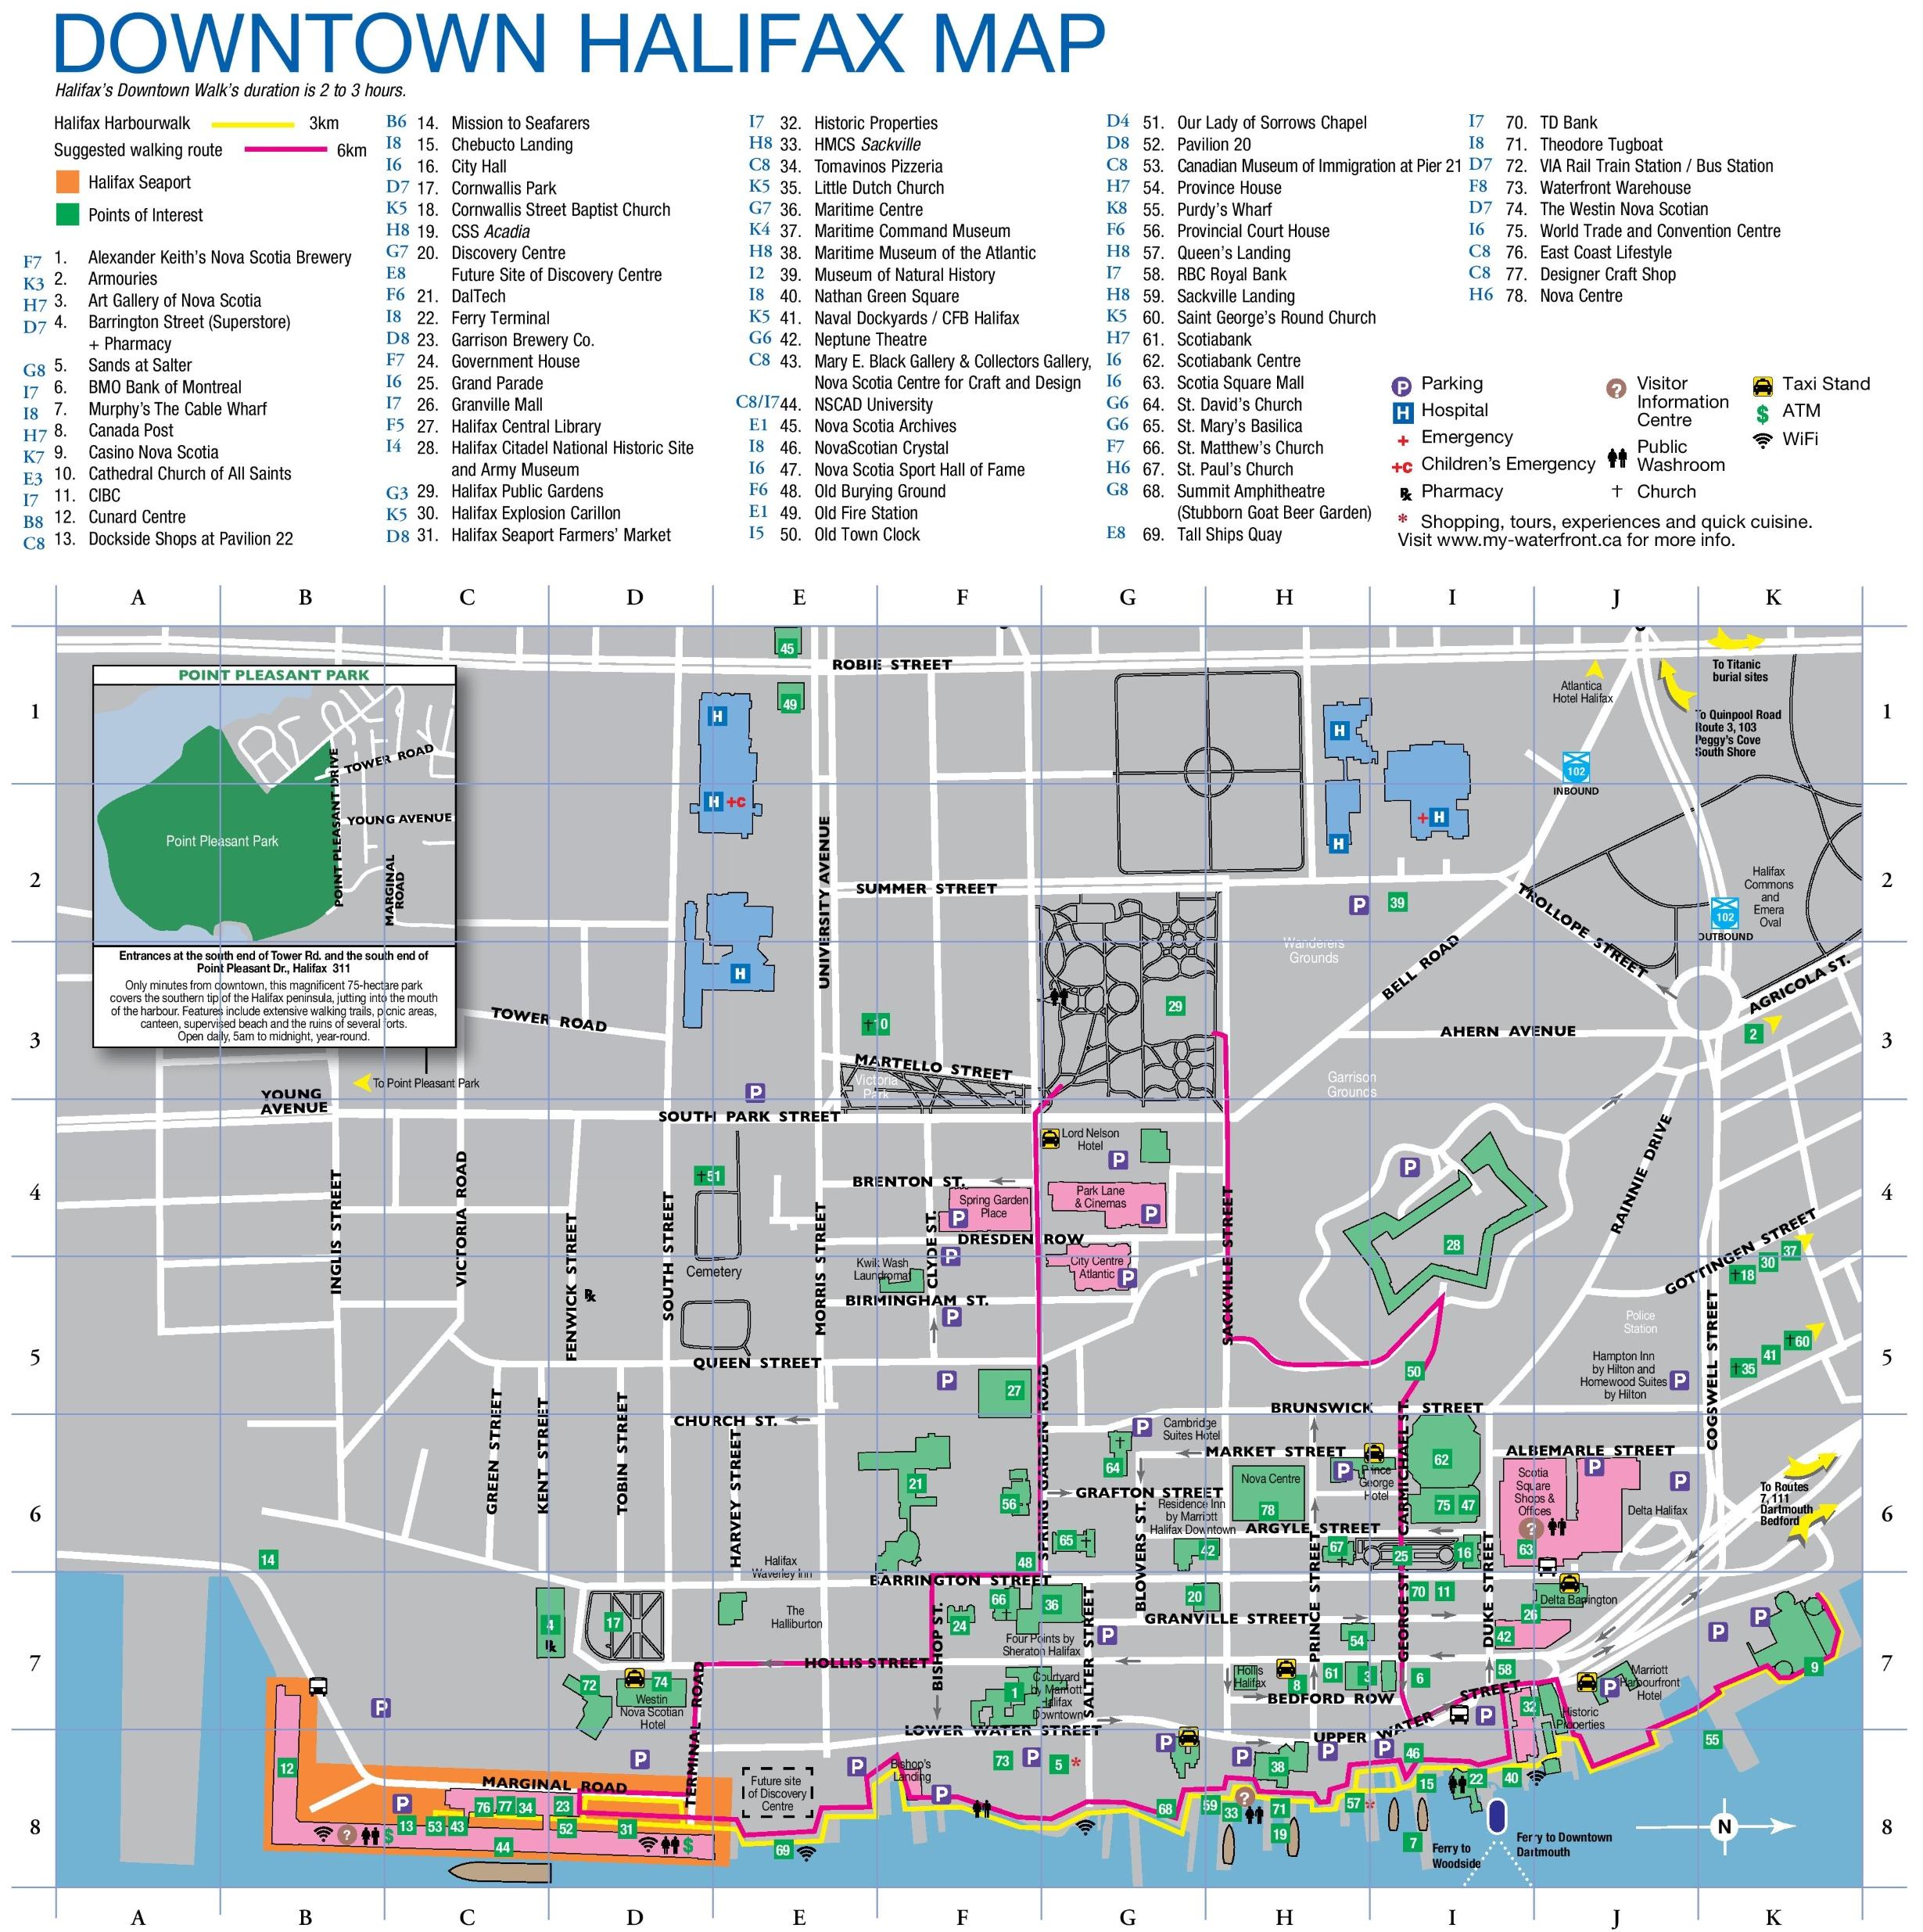 Halifax downtown map